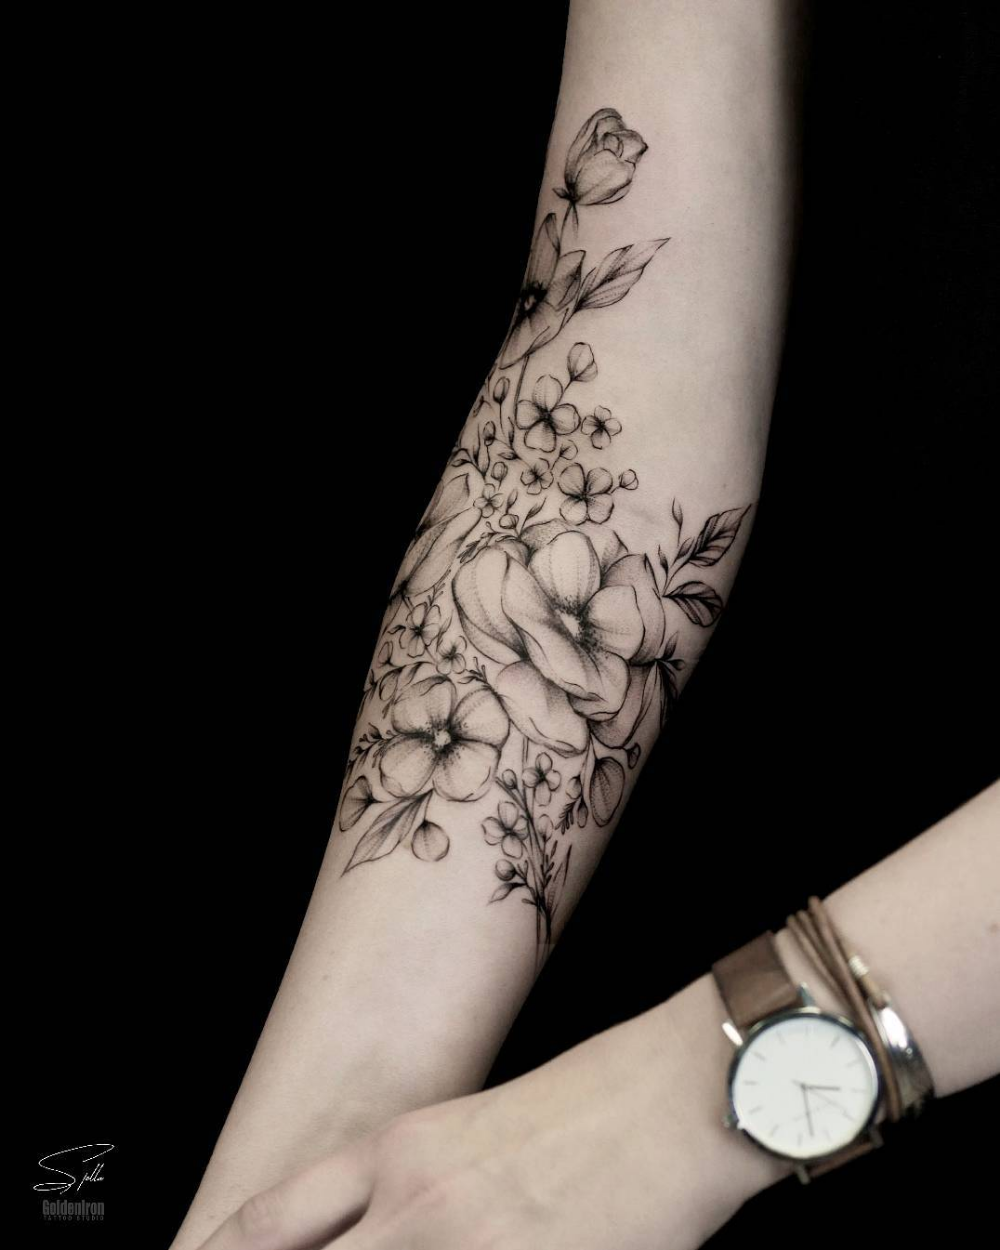 2019 Small Flower Arm Tattoos for Women · (With images)